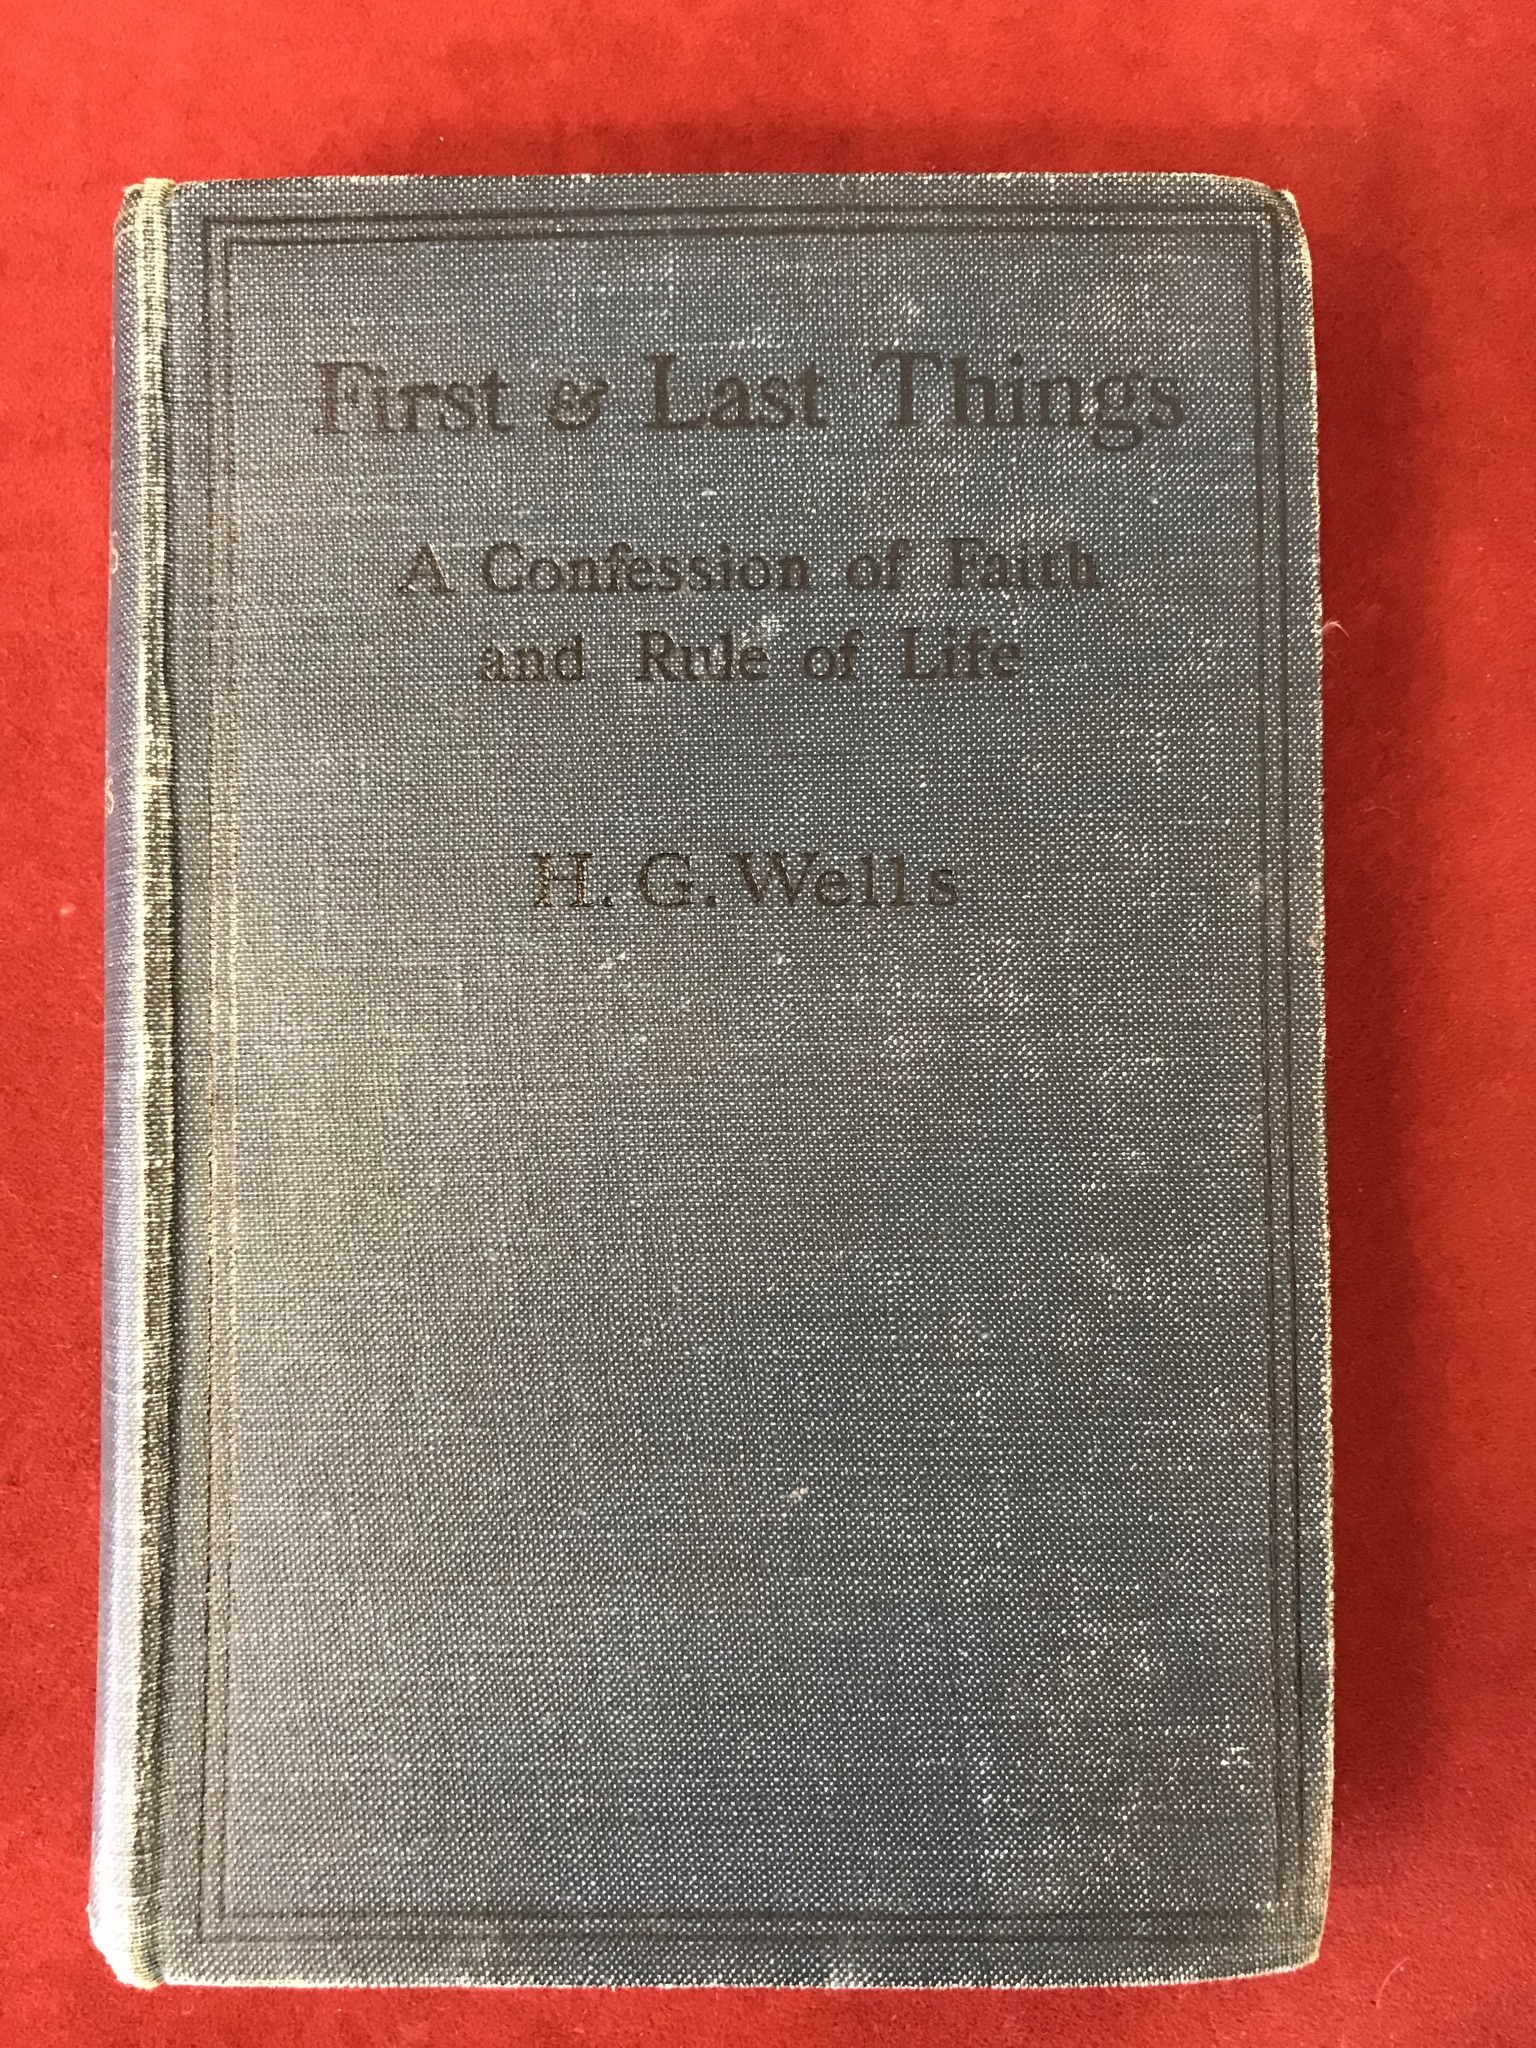 First and Last ThingsFirst edition 1908, no D/W, fair condition, also Tauchnitz 1909, poor